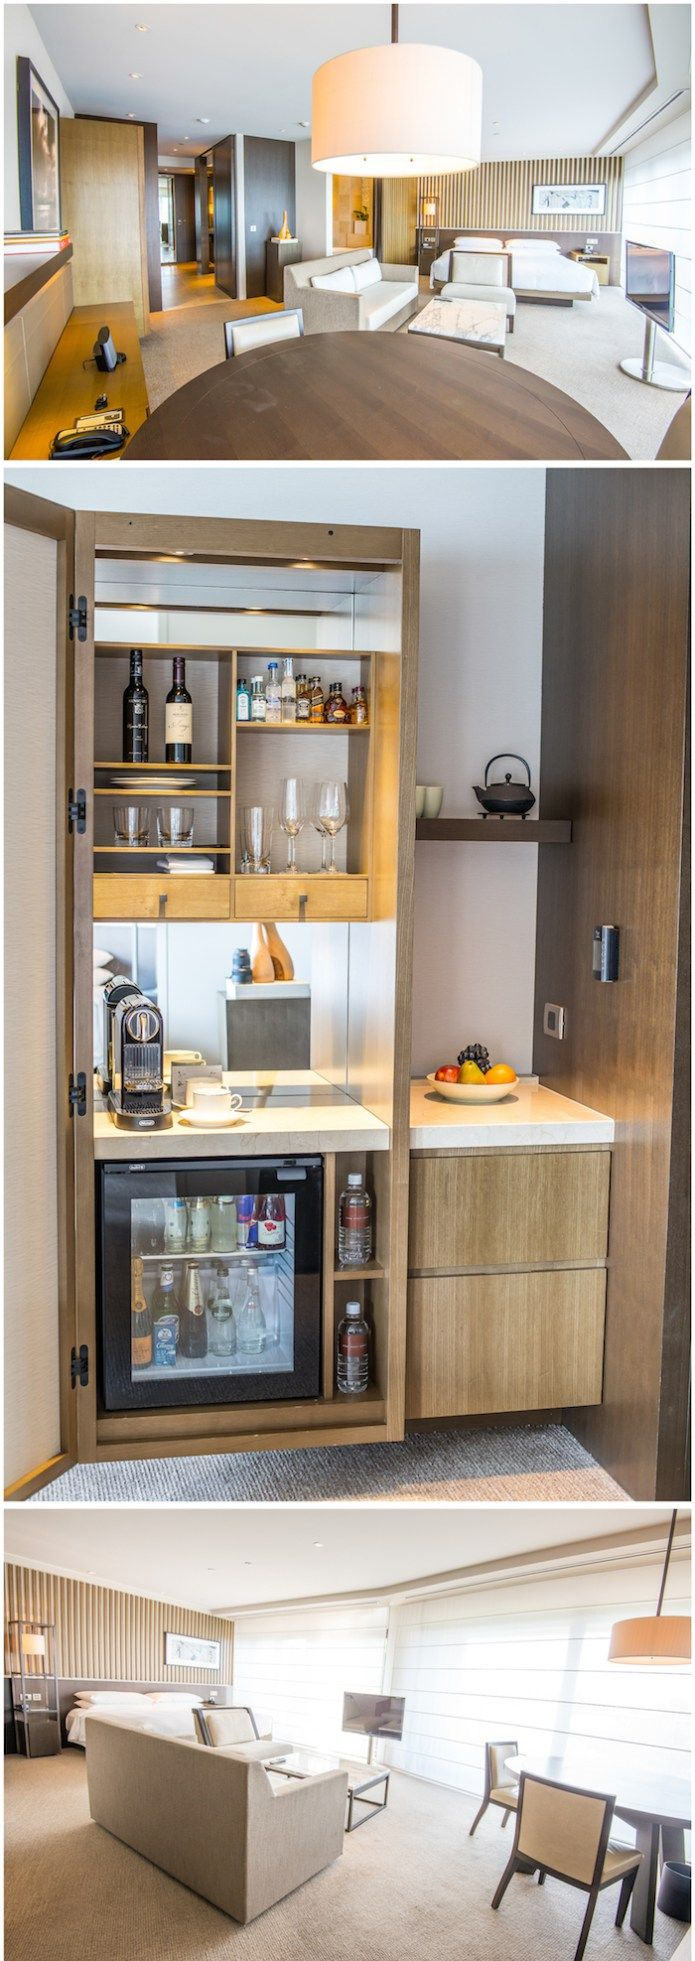 Small Hotel Room Design: 17 Best Images About 120 Cm Kitchen On Pinterest